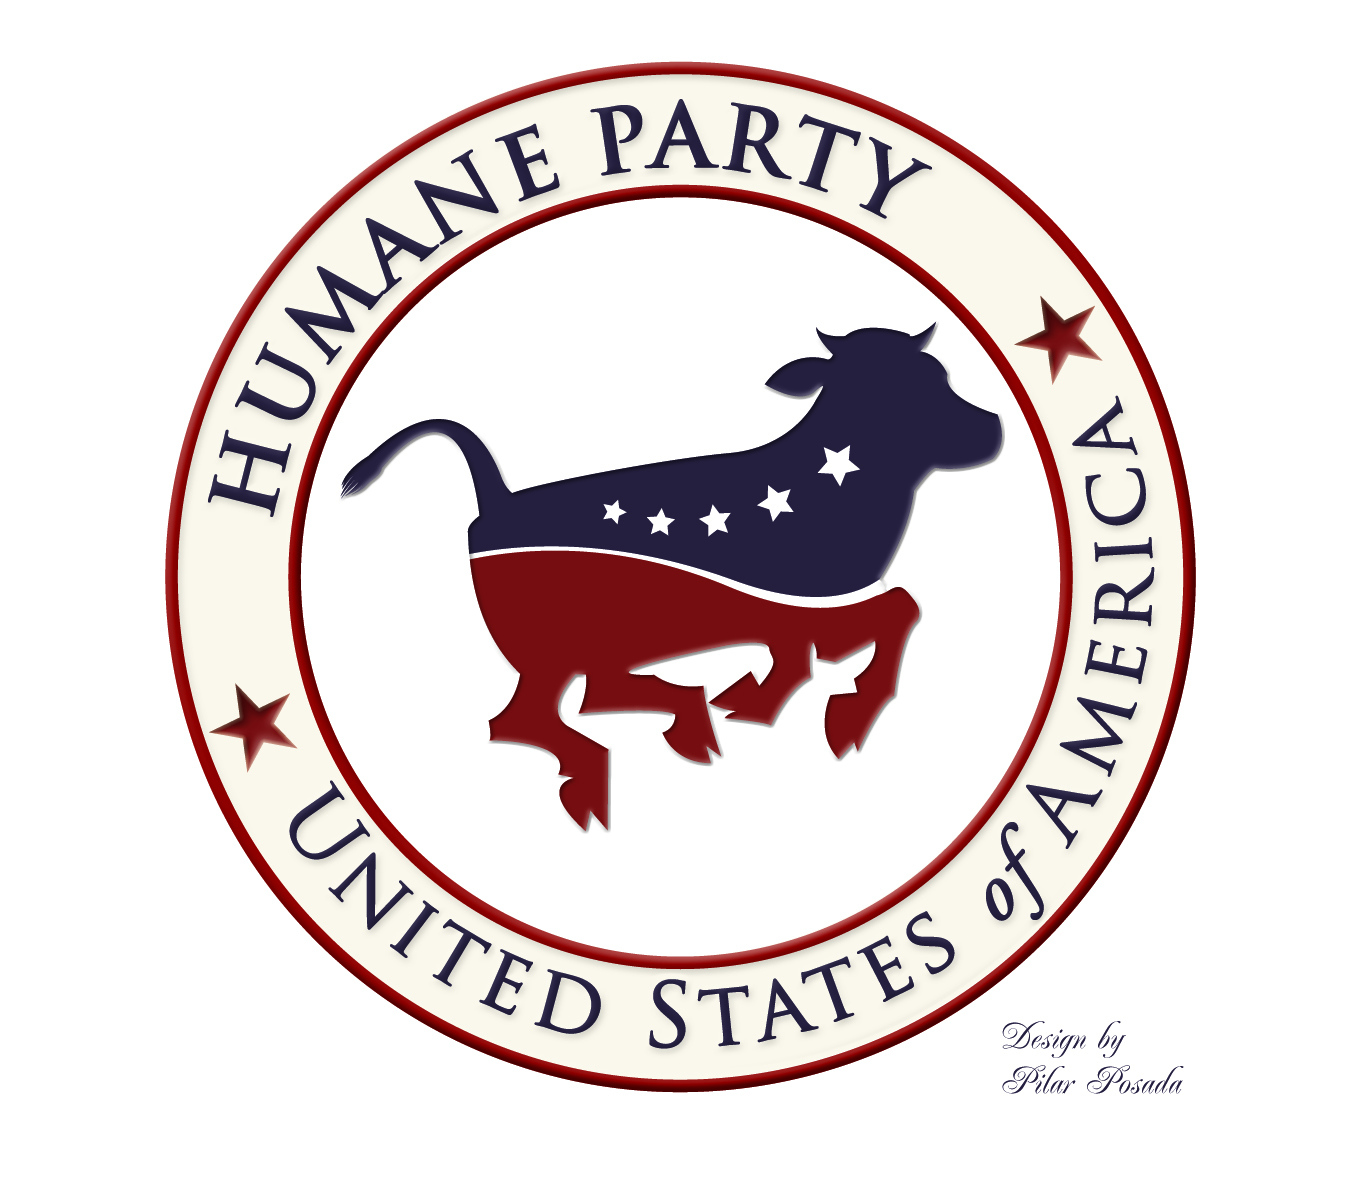 Humane Party Working Locally